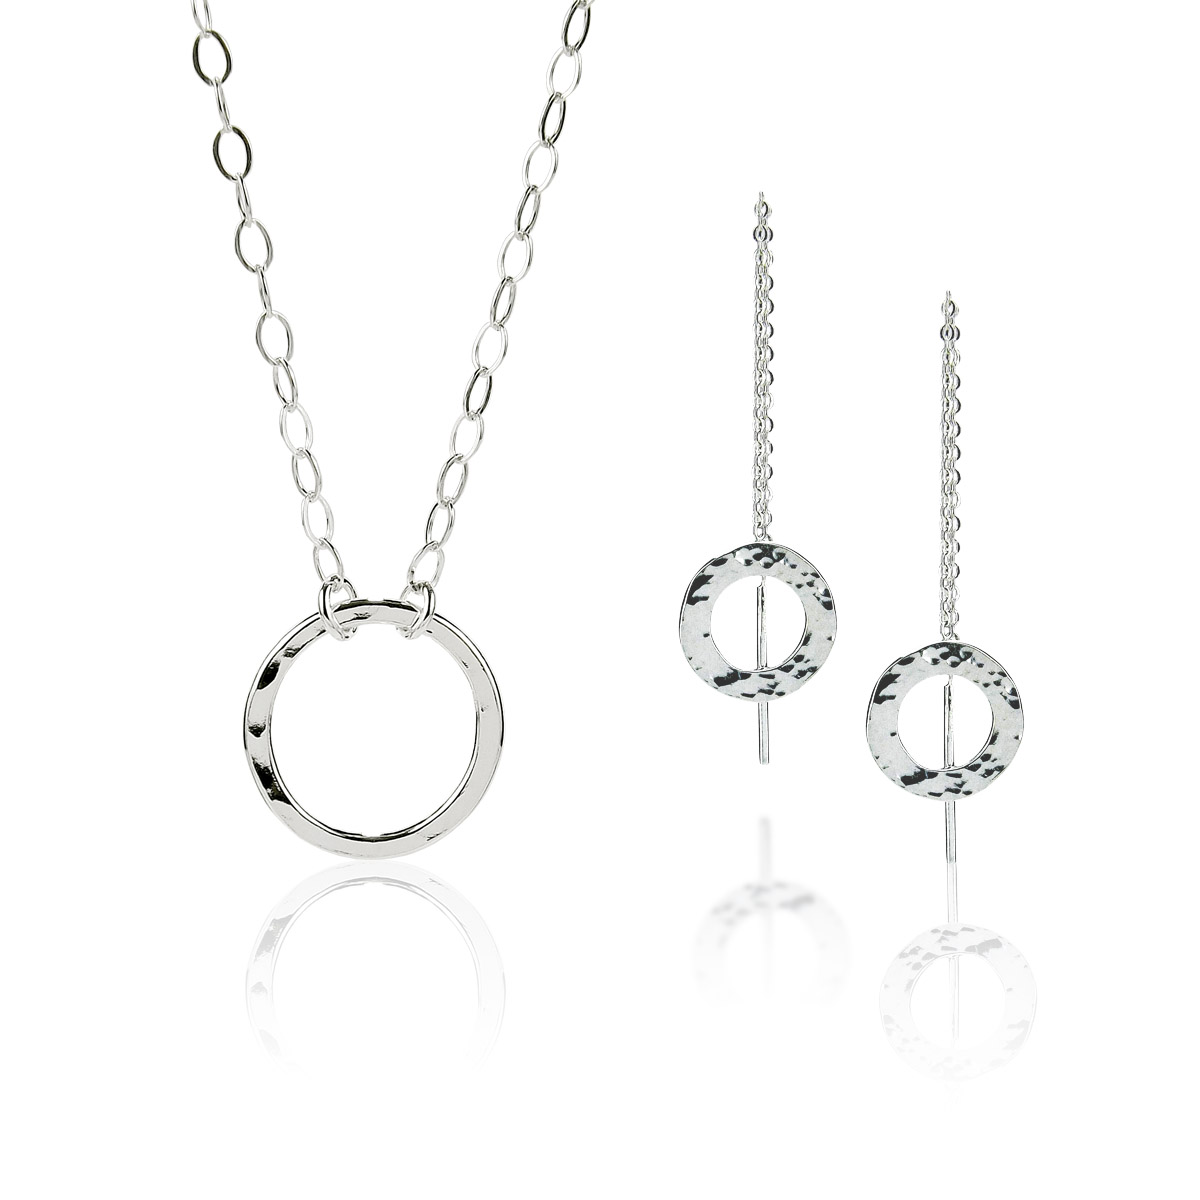 Necklace and Earring Set – Jamie Santellano